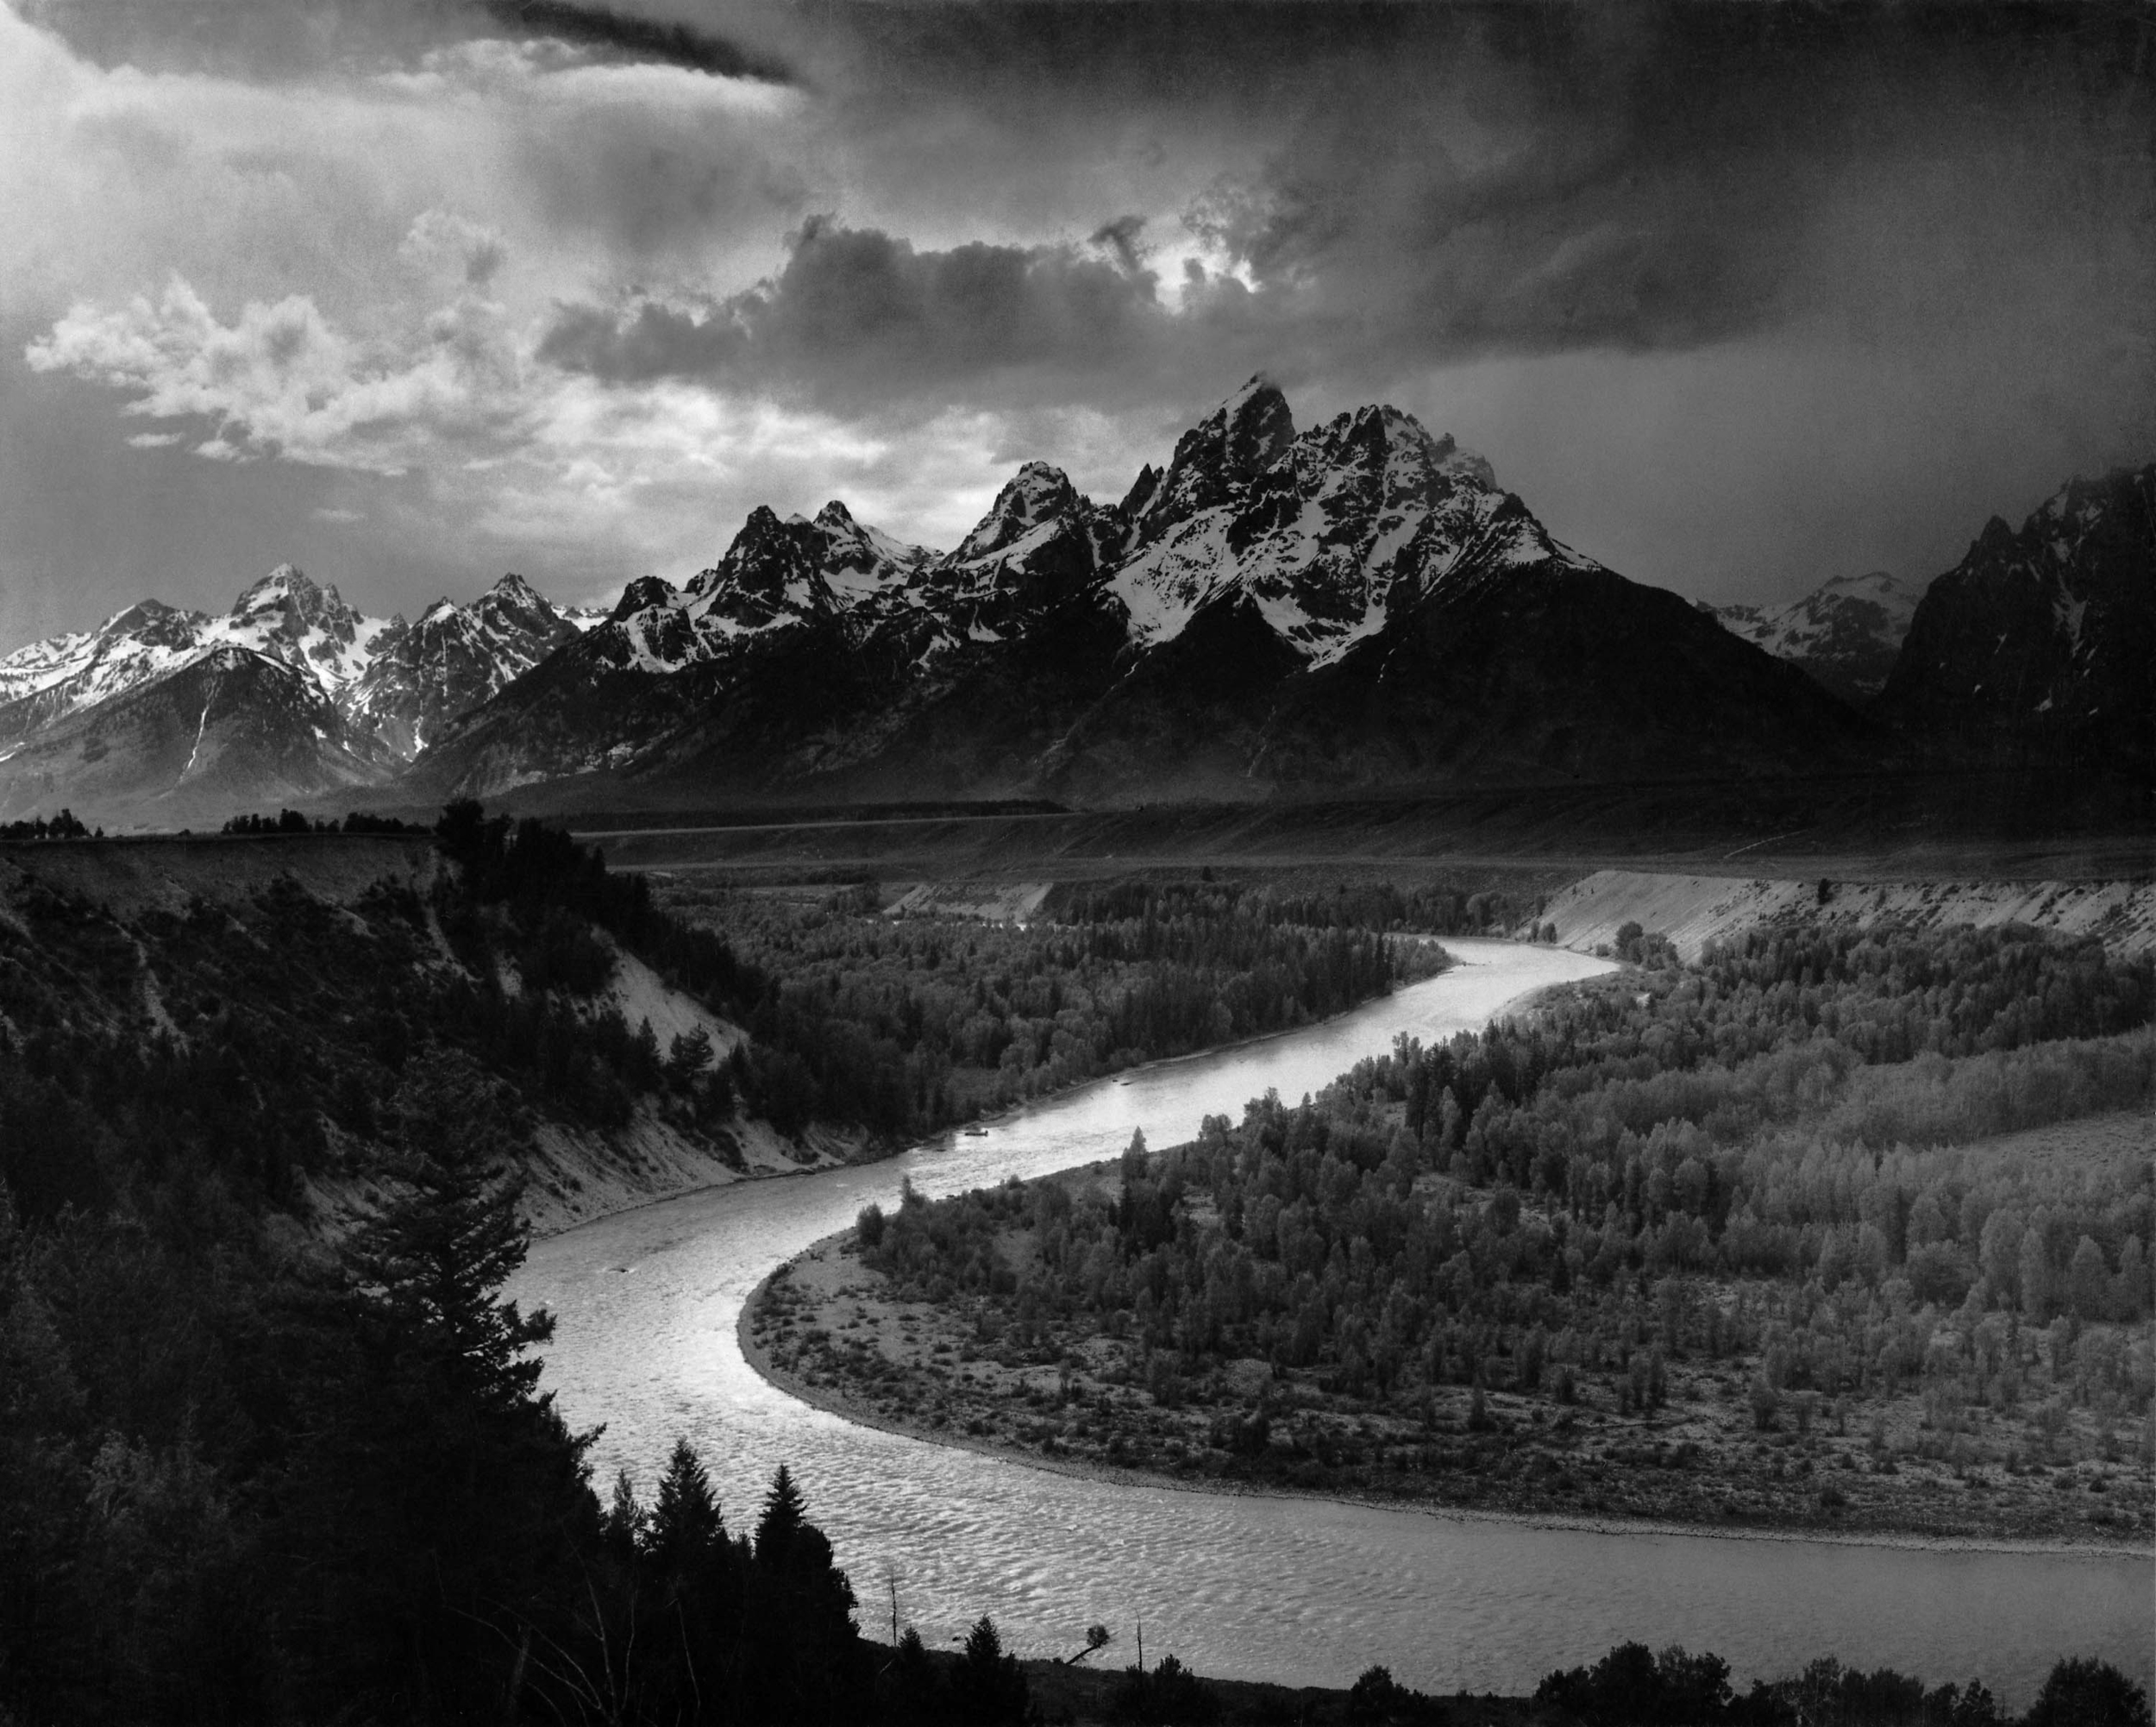 Adams The Tetons and the Snake River ©Ansel Adams,via  Wikimedia Commons